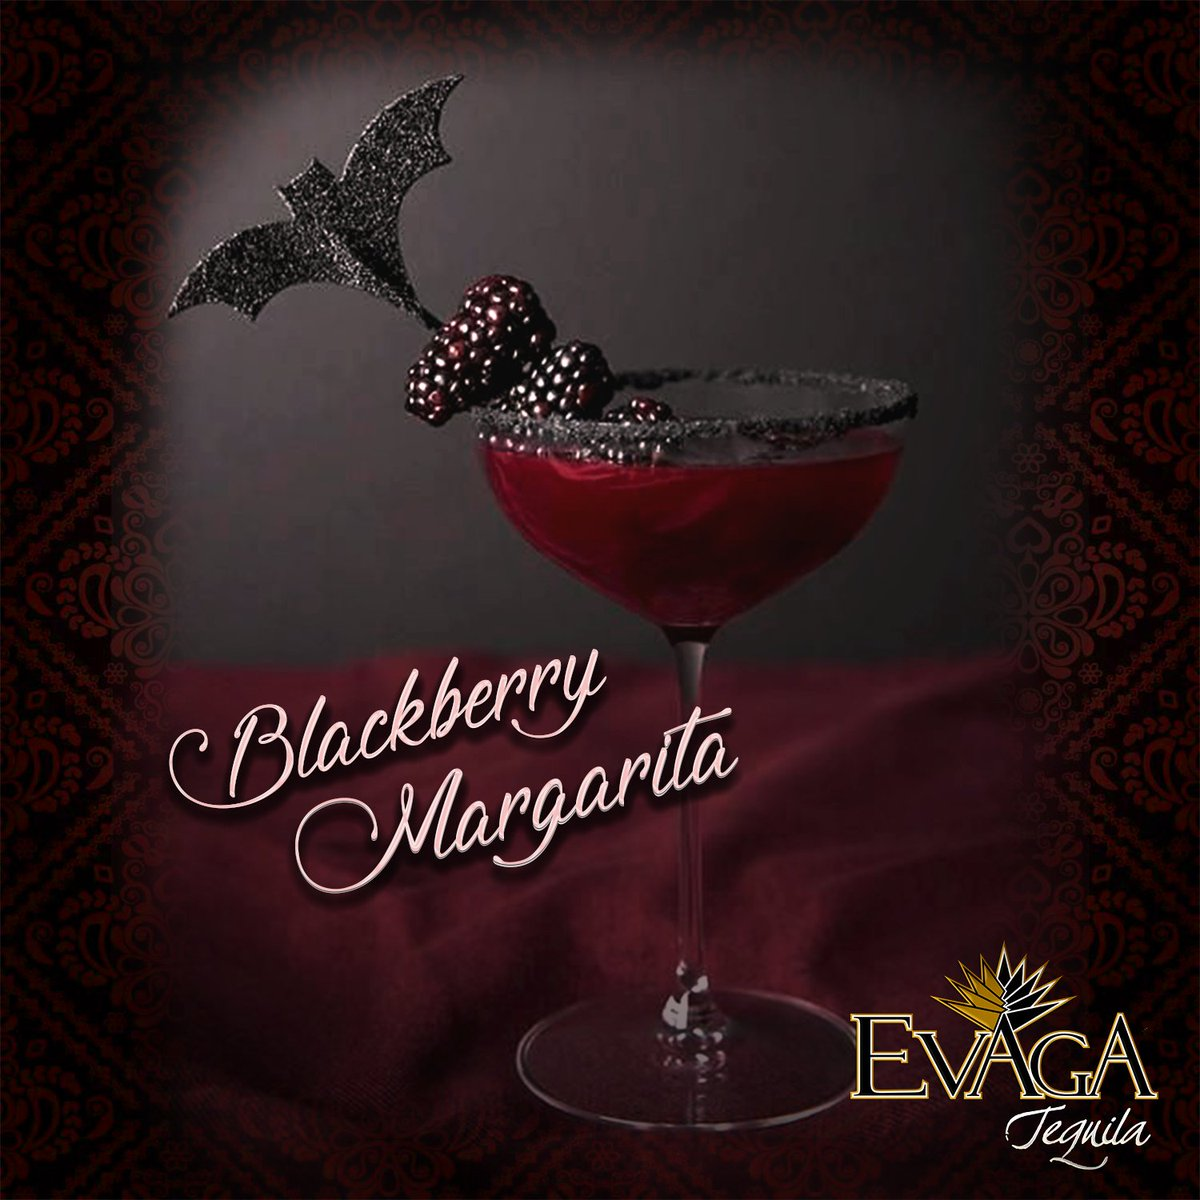 In this season #try and #LiveTheExperience of #blackberrymargarita  #trickortreat i prefer a drink! lol  #celebrate #tequila #evagatequila<br>http://pic.twitter.com/tqznfKfOnZ